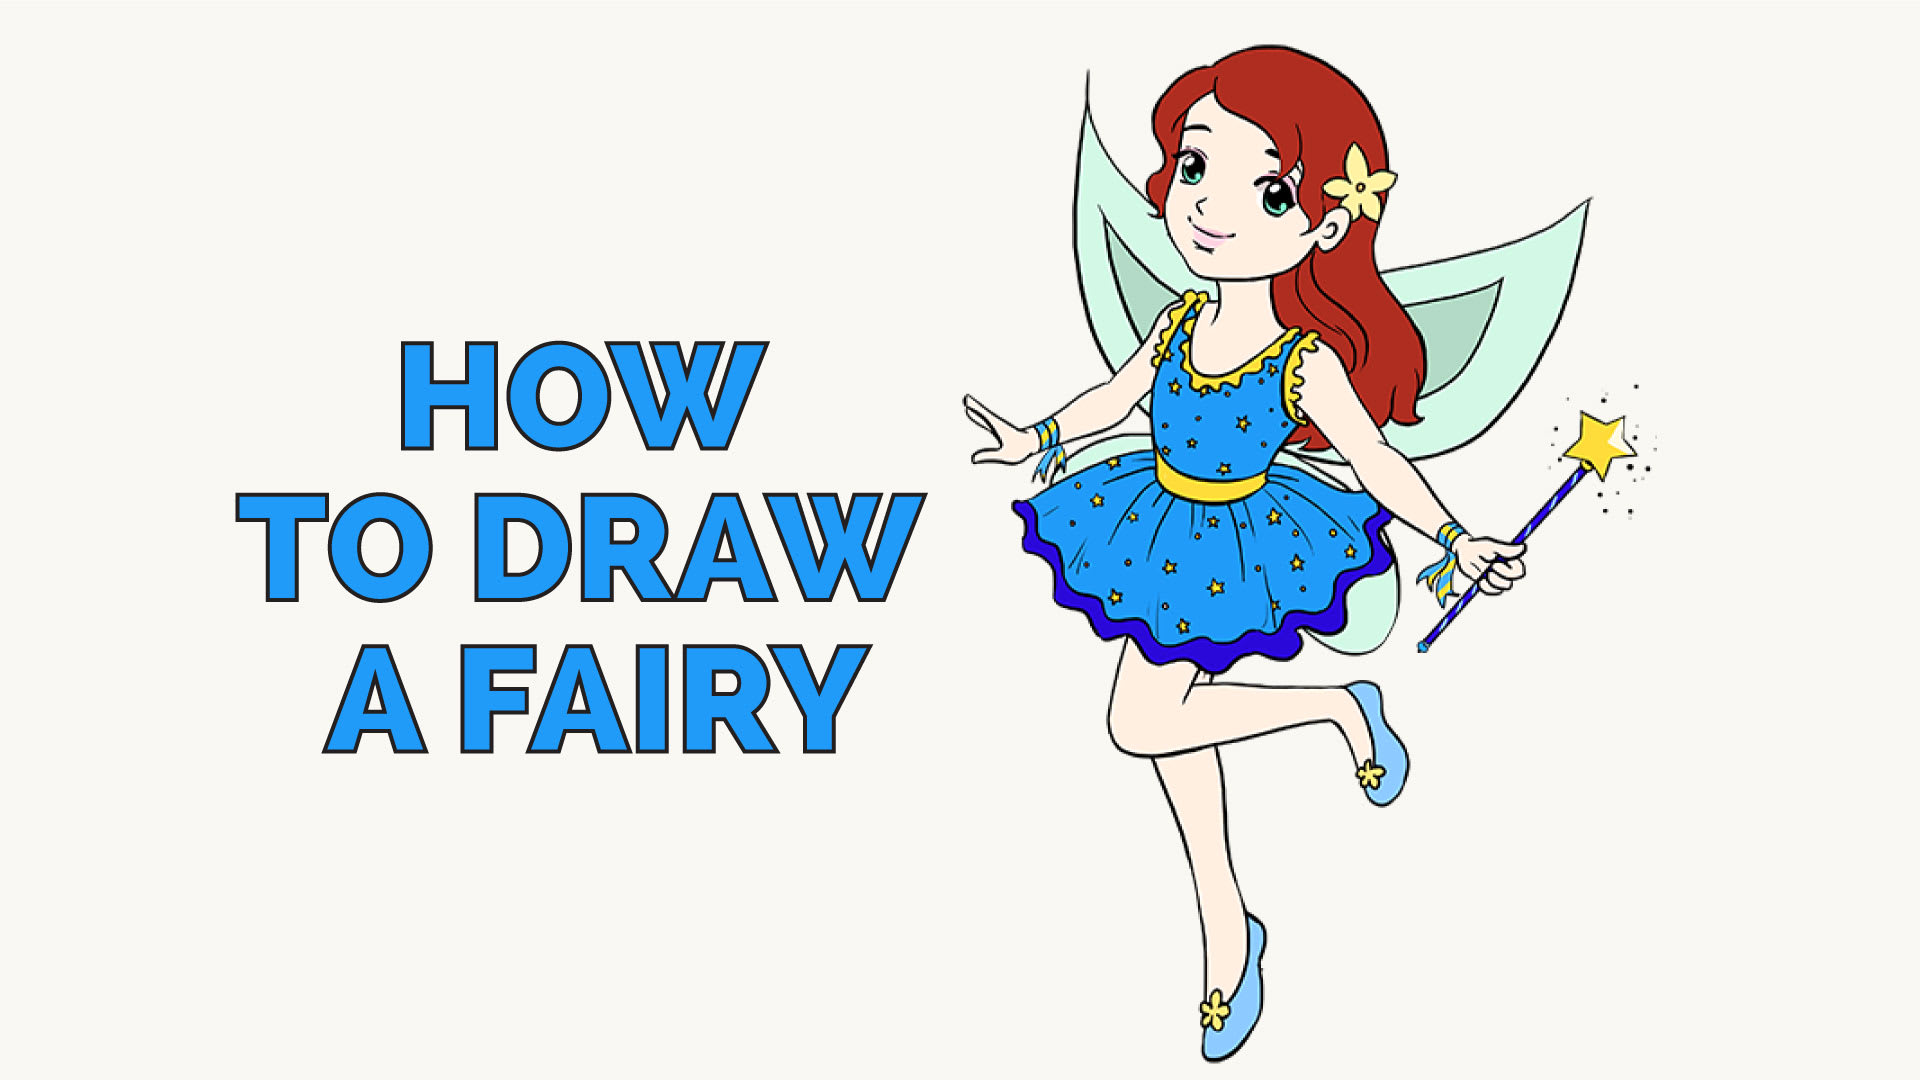 How to draw a fairy in a few easy steps easy drawing guides